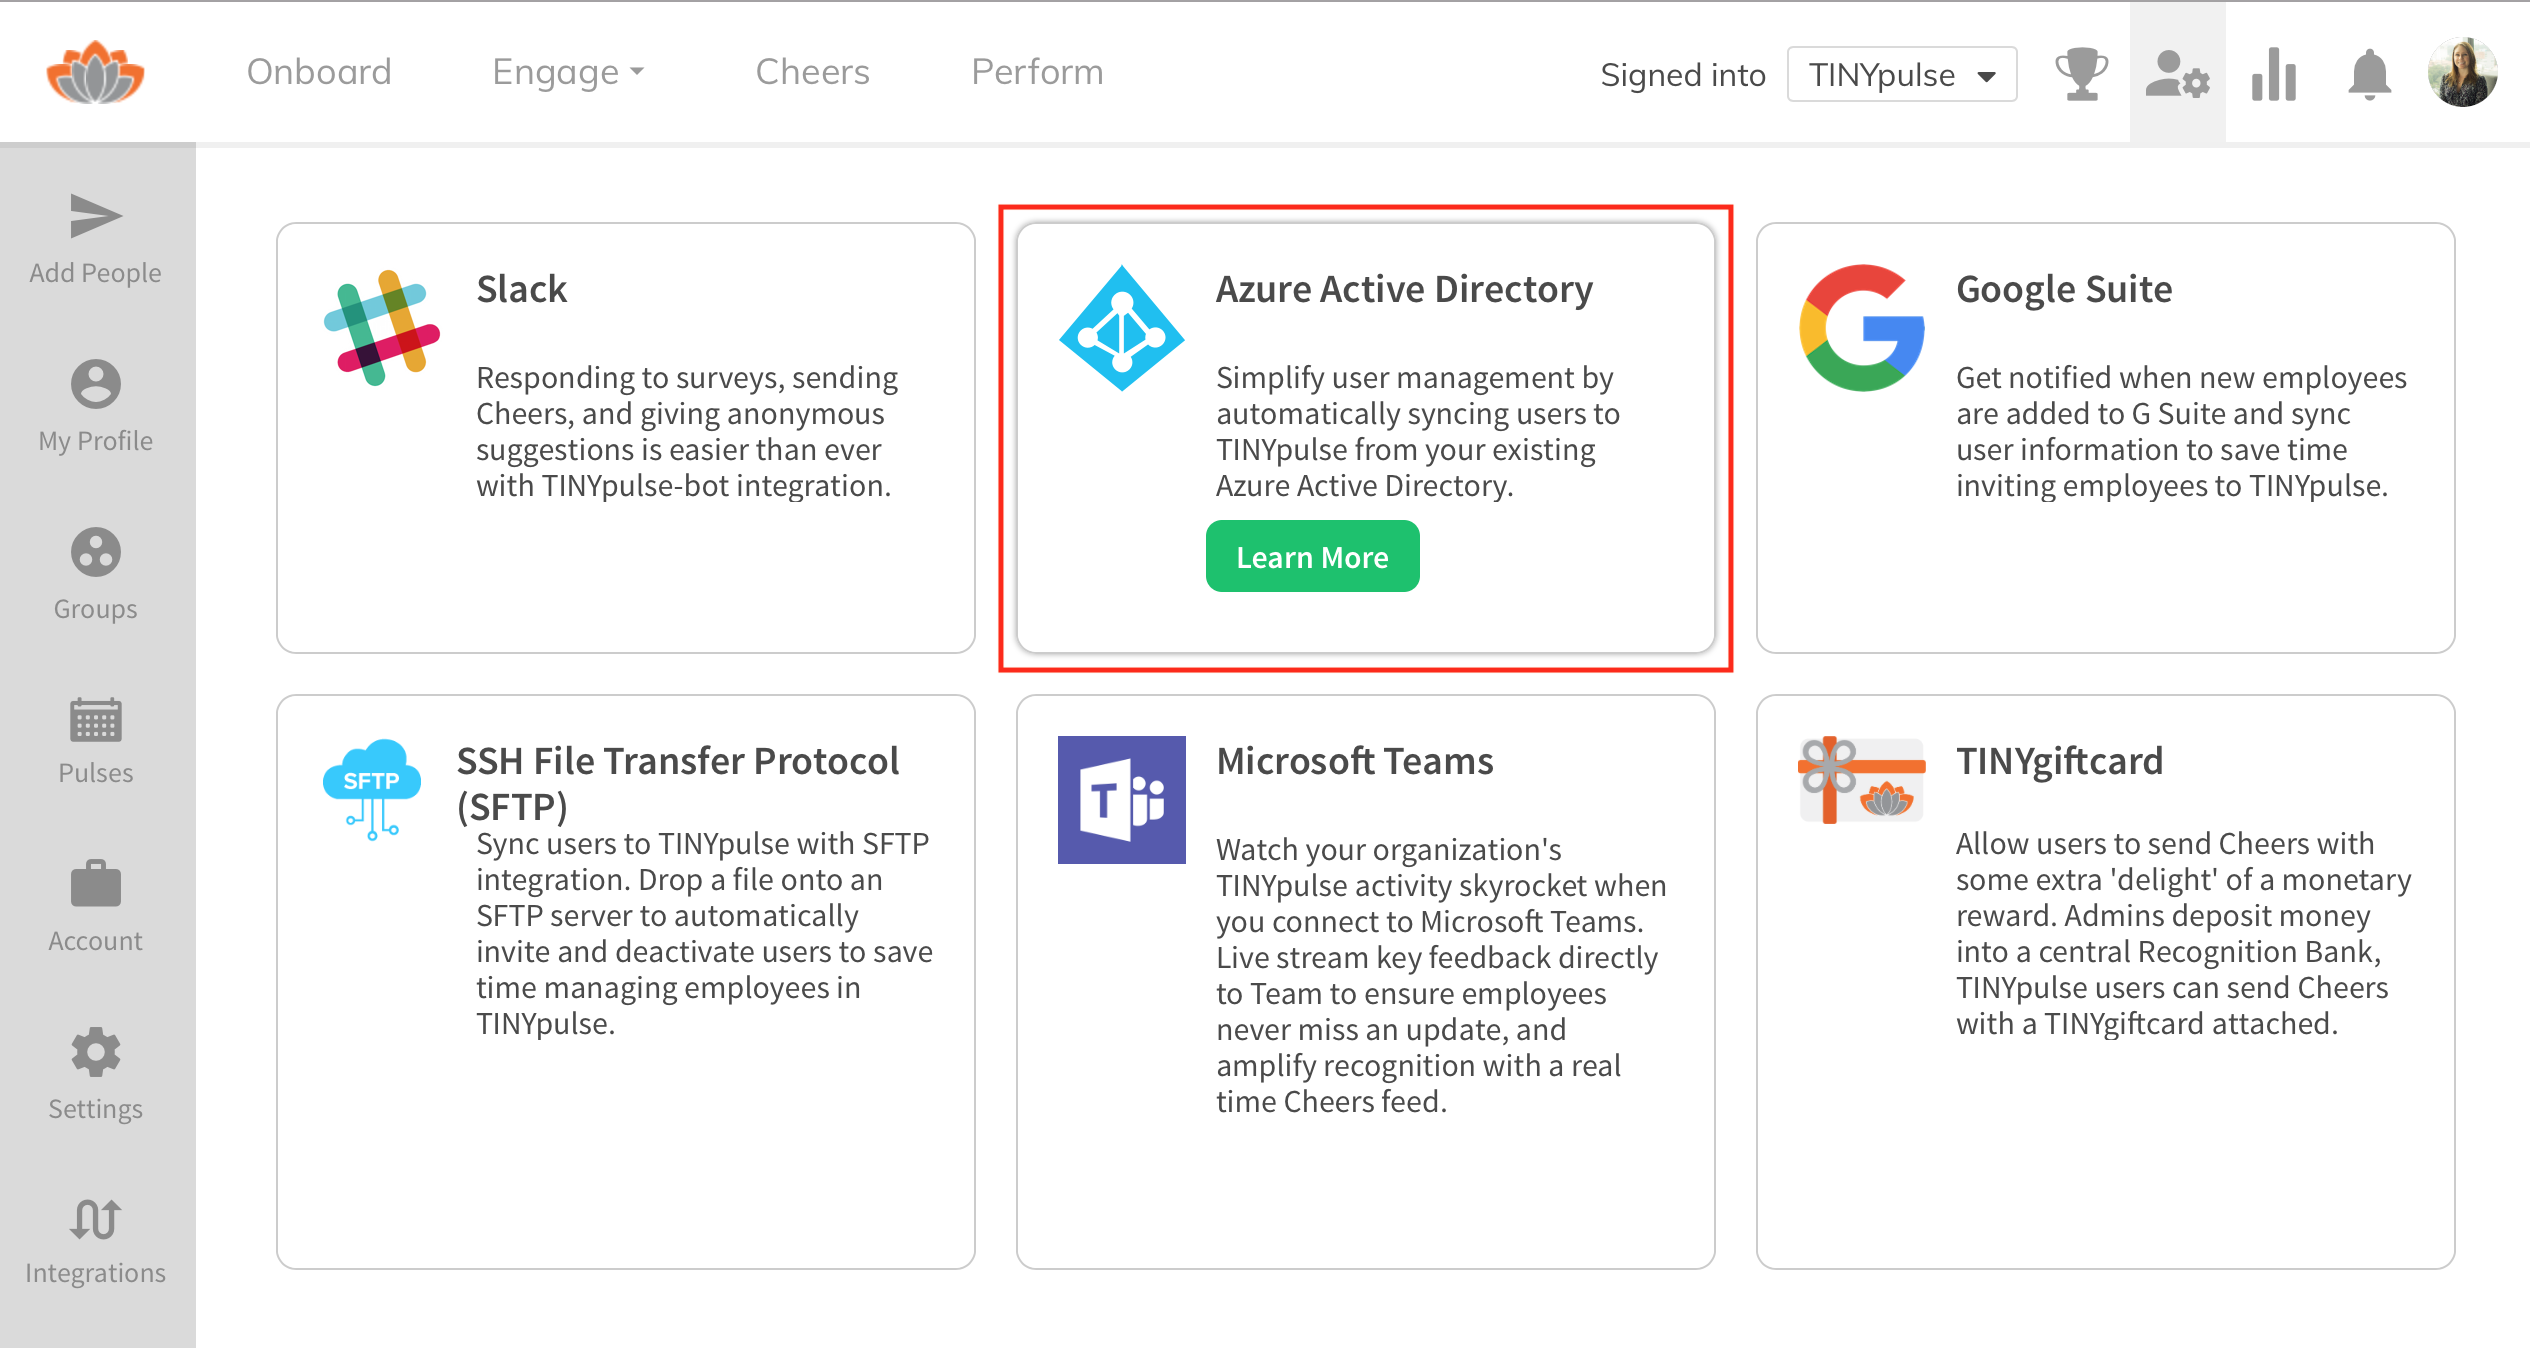 Integrate with Azure Active Directory : TINYpulse